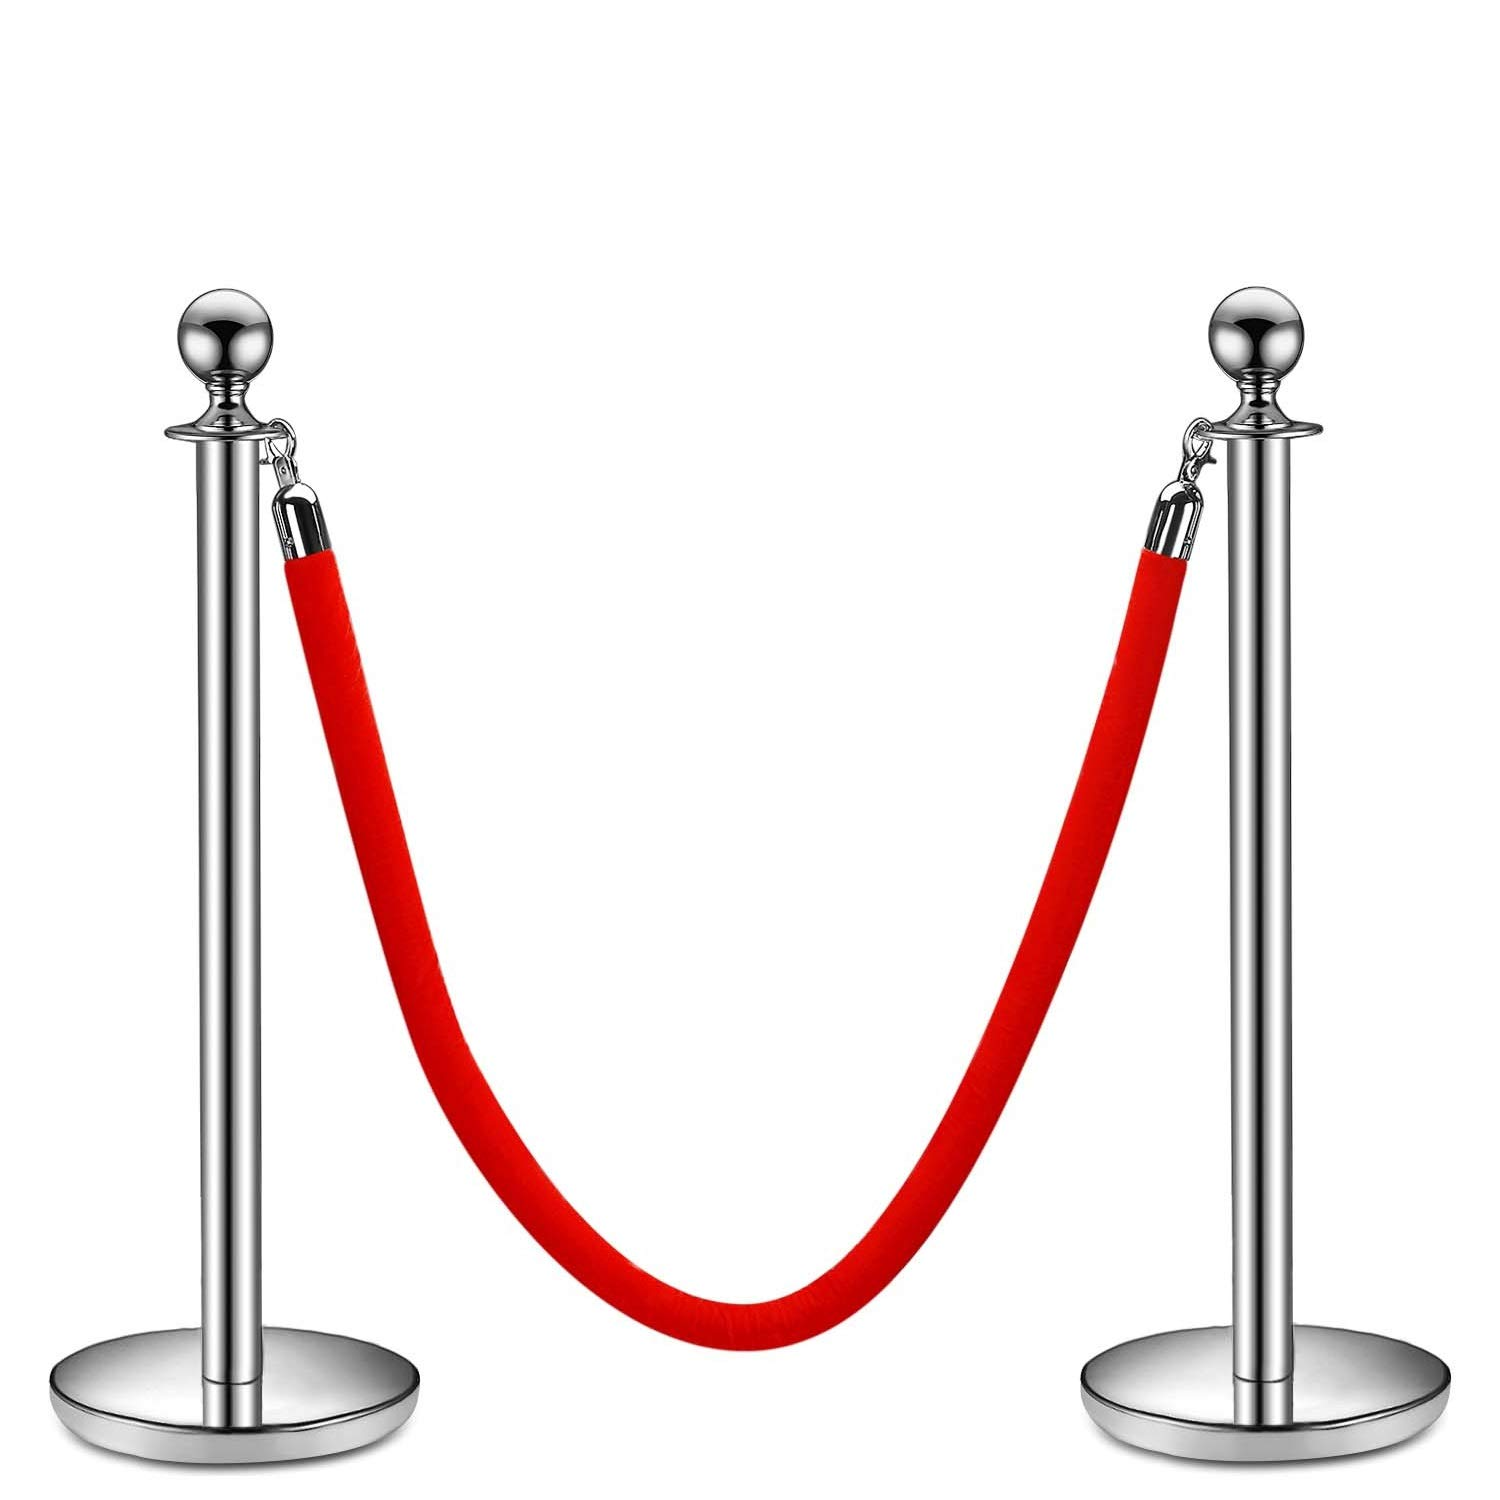 Flexzion Stanchion with Red Velvet Rope Stainless Steel Set of 2 Posts - Ball Round Top Crowd Control Queue Pole Barrier Ideal for Indoor Outside Theaters Museums Bank Hotel Trade Decoration (Silver) by Flexzion